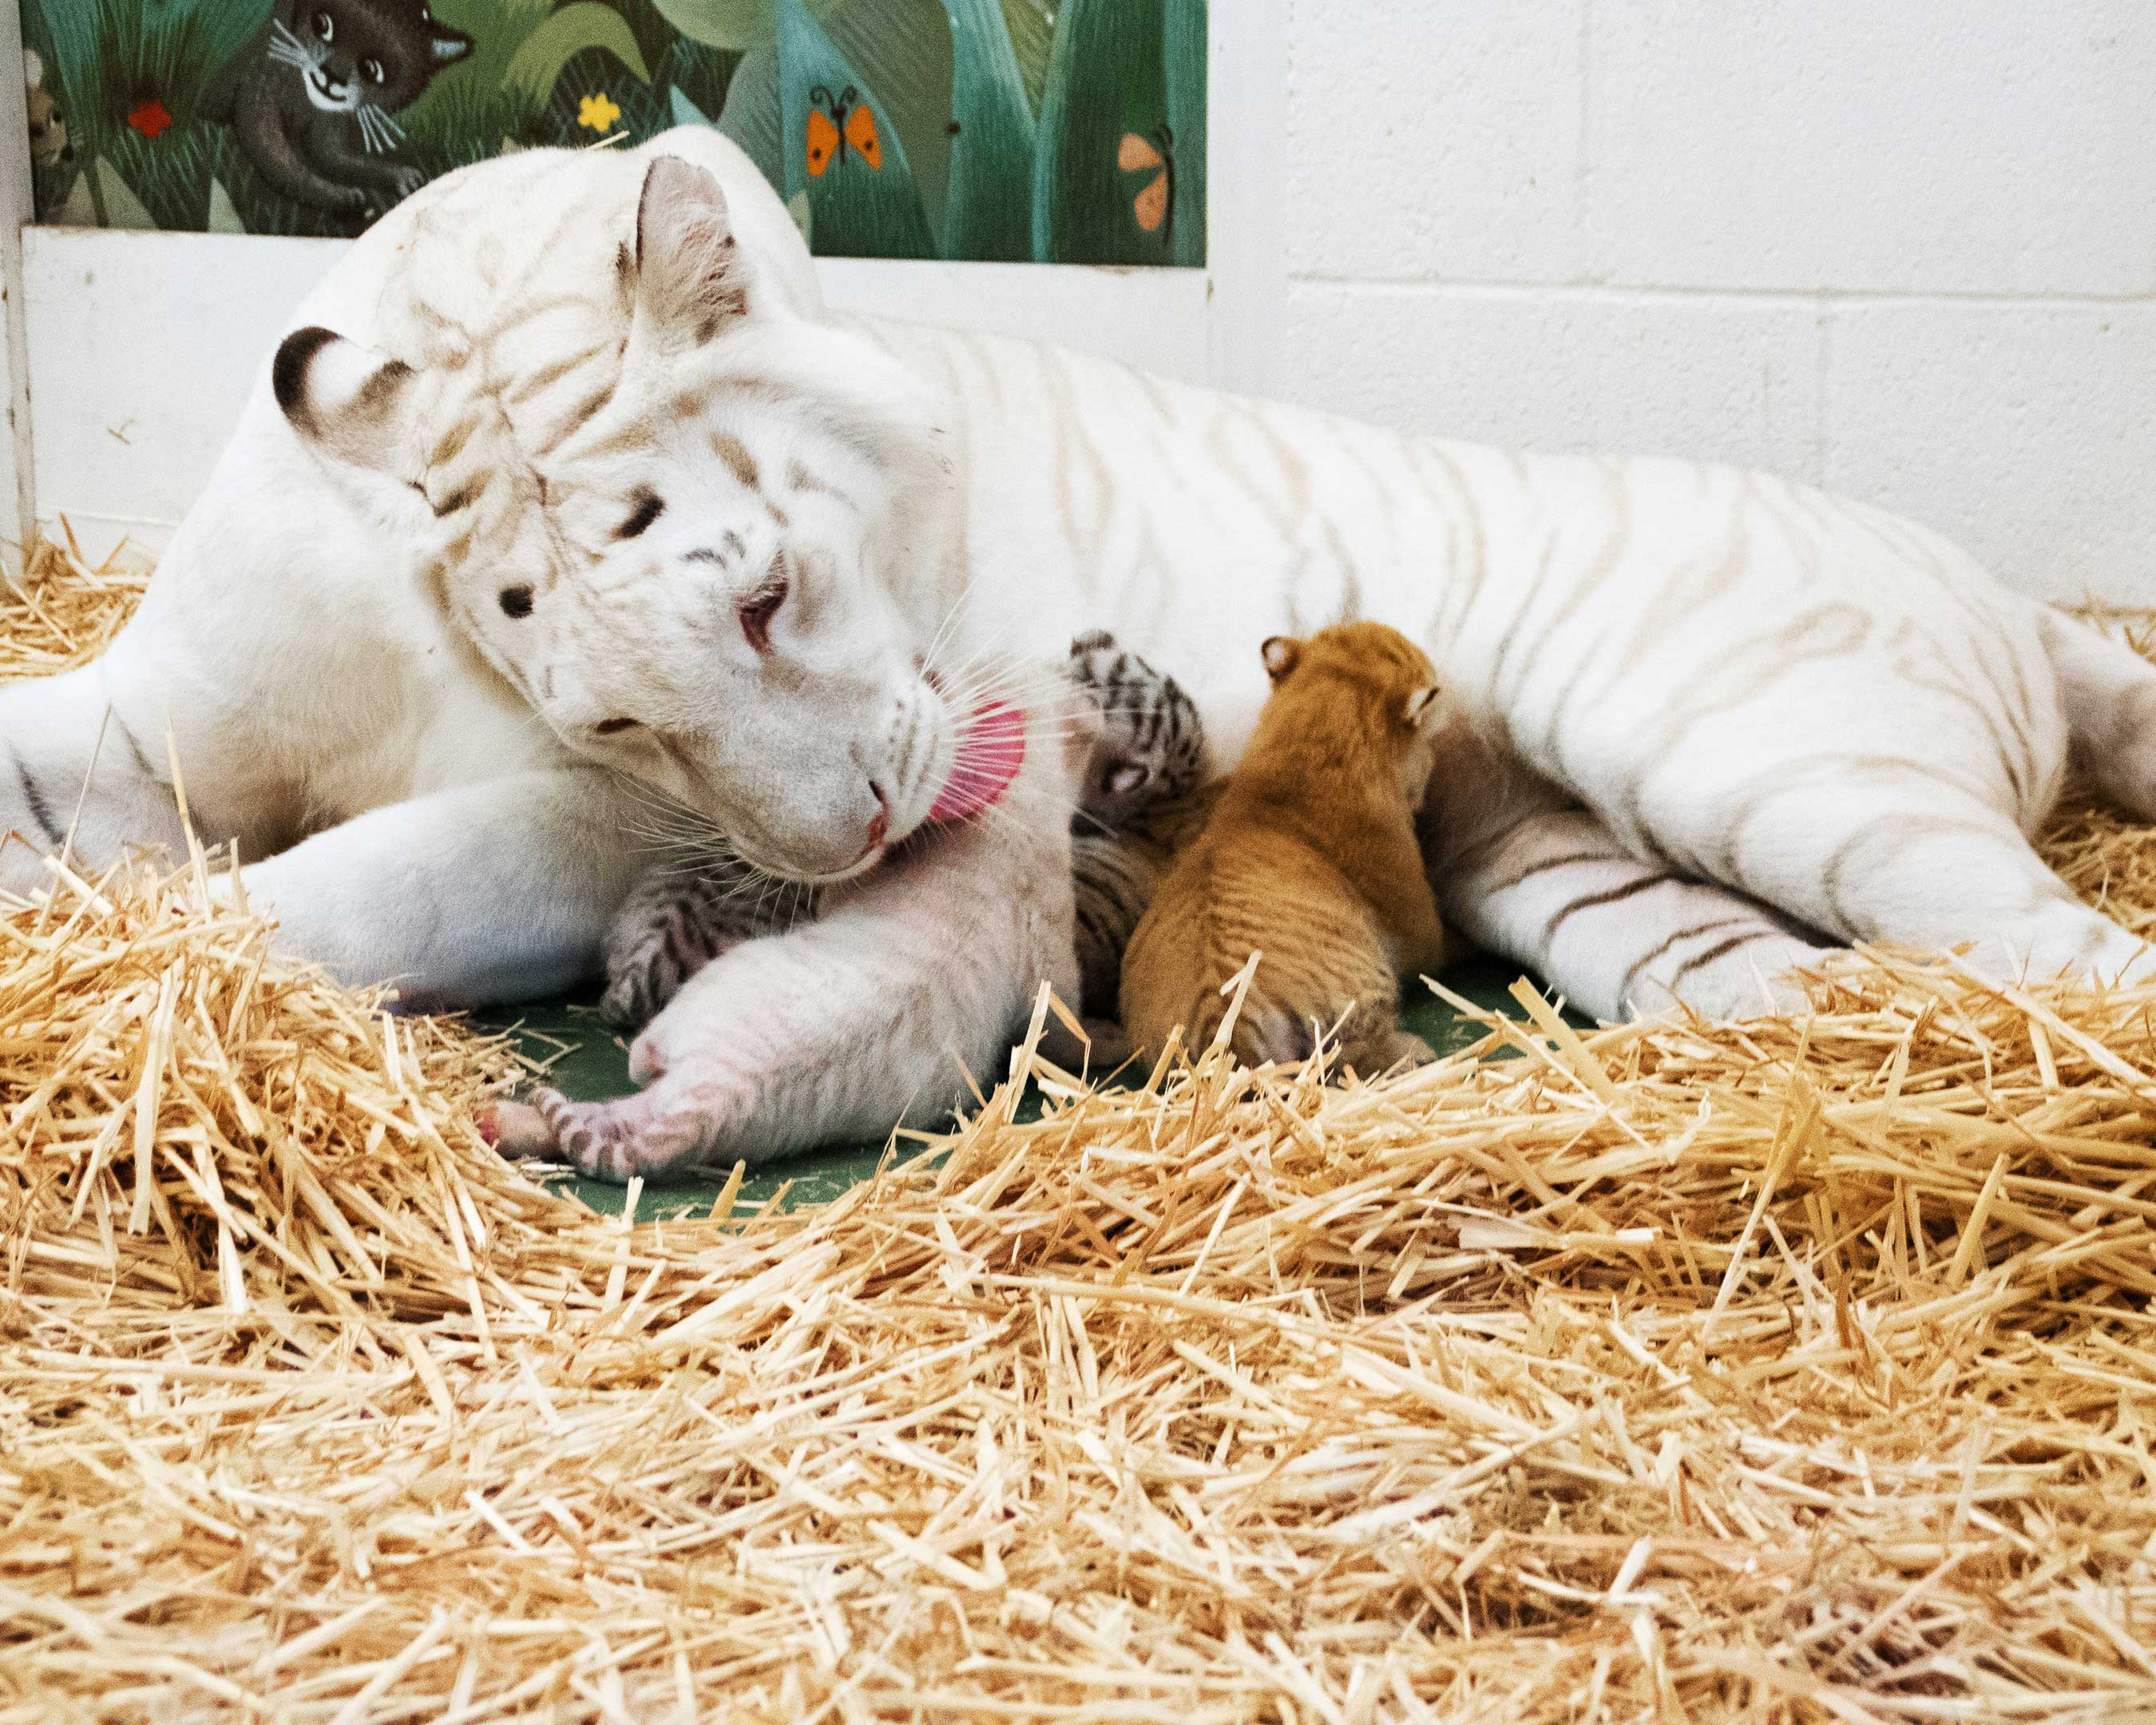 Siegfried & Roy's @SARMOTIcubs with their mother, Indira